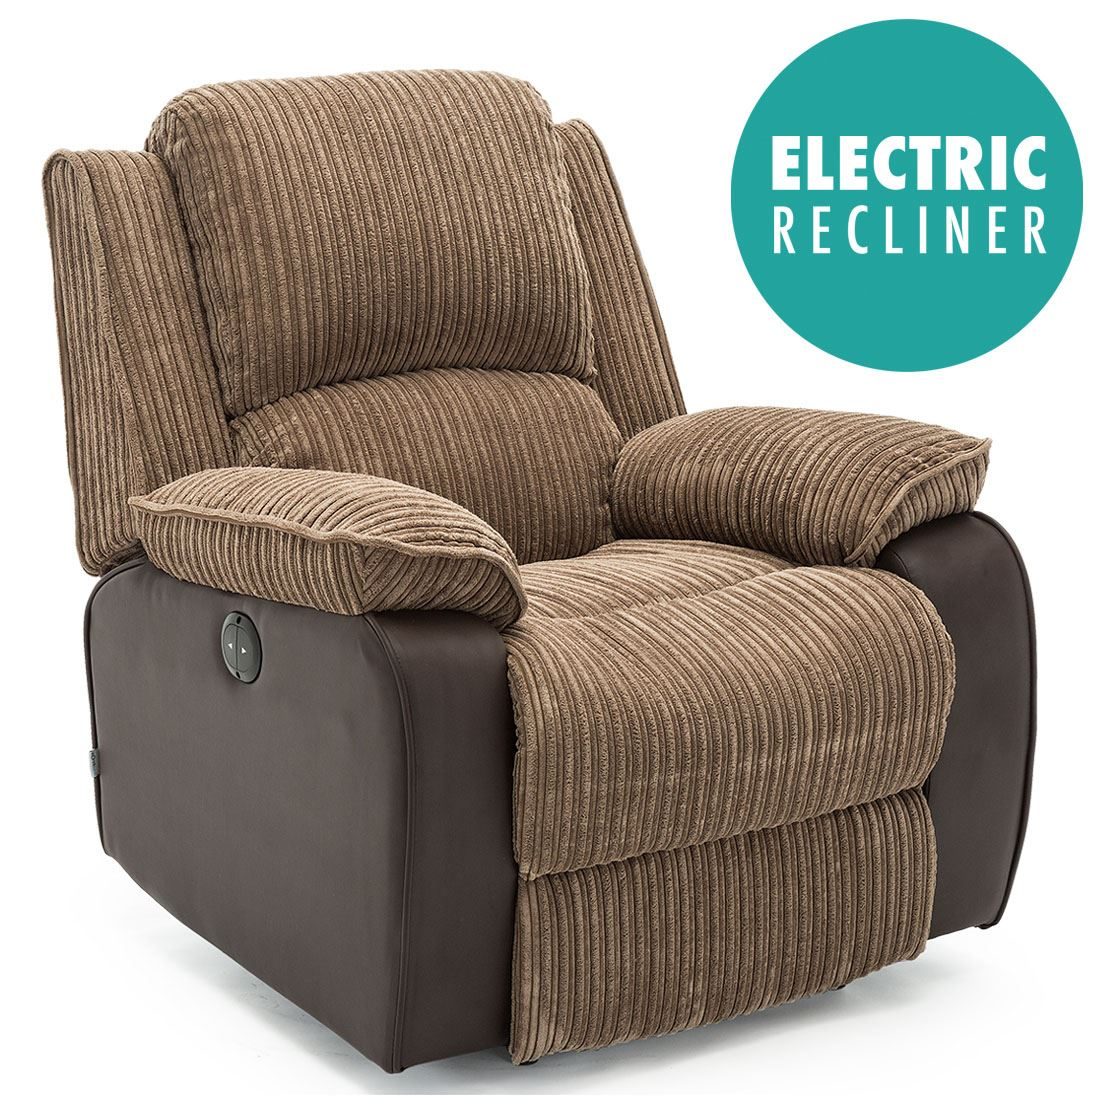 Electric Reclining Chair Postana Grey Jumbo Cord Fabric Power Recliner Armchair